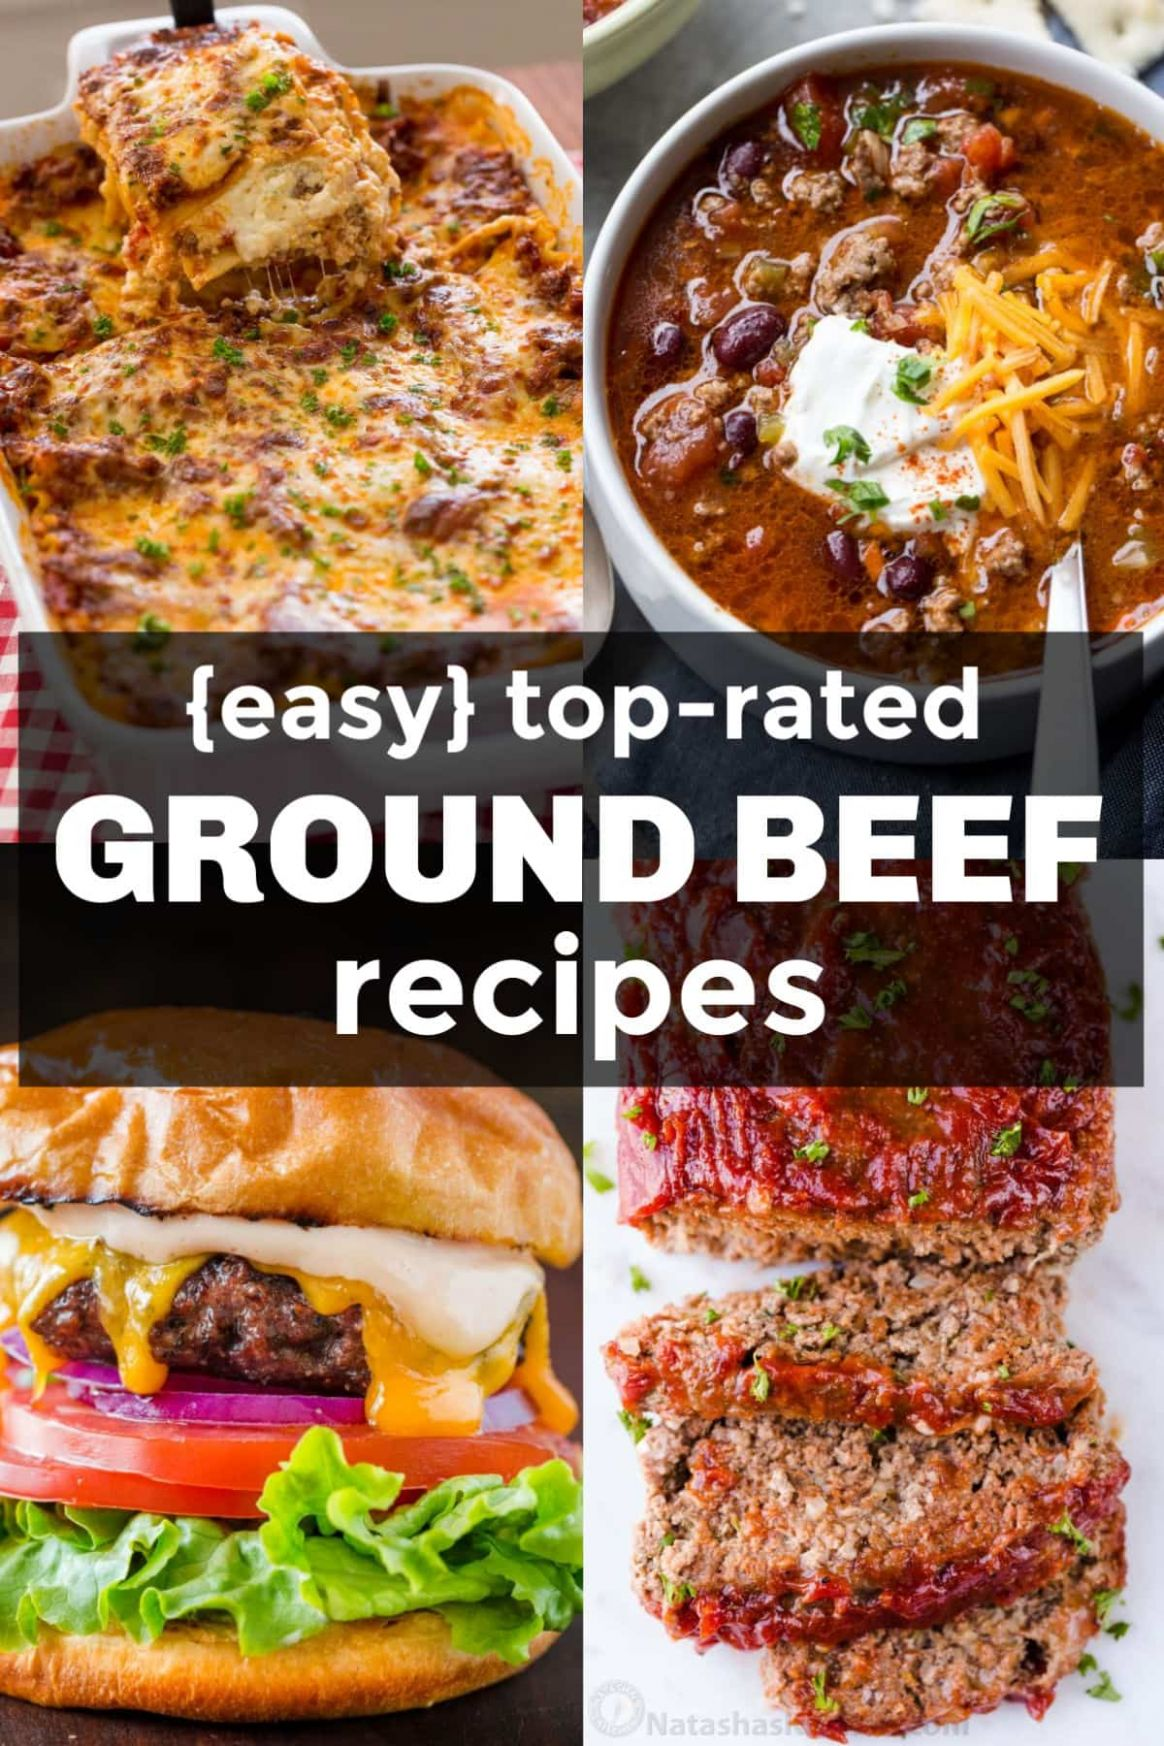 How to Cook Ground Beef for Ground Beef Recipes - Ground Beef Recipes You Can Freeze